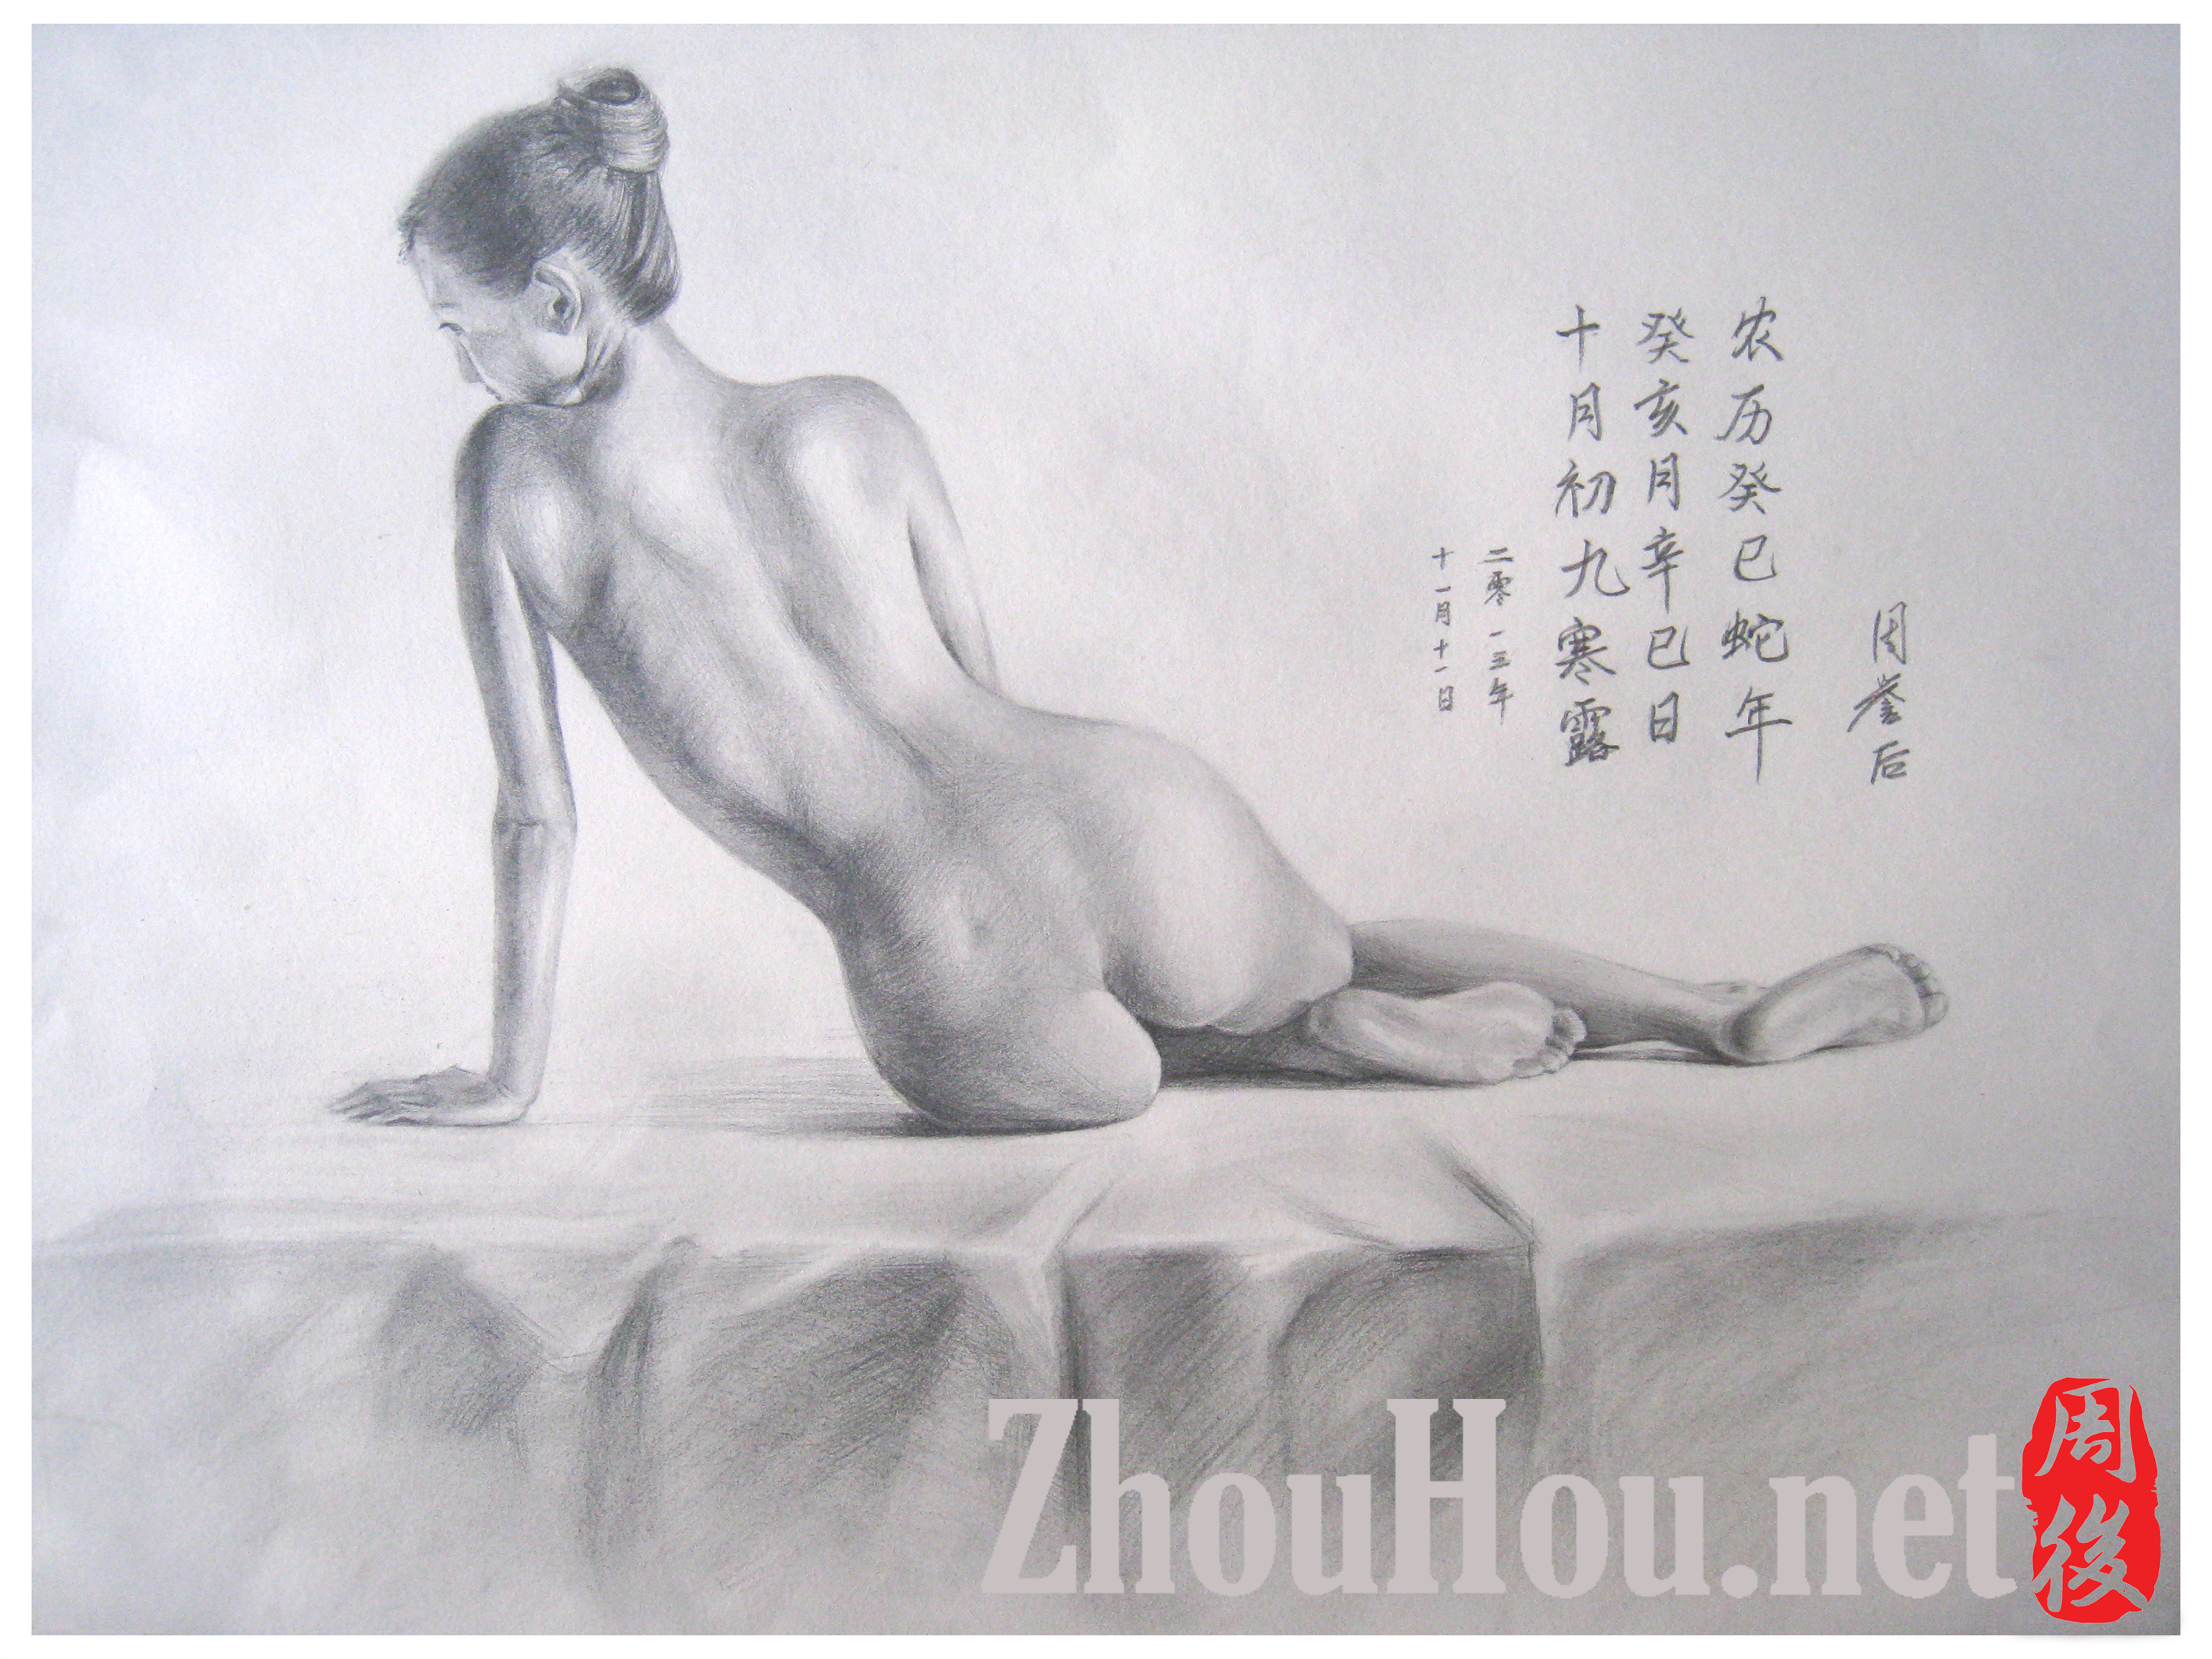 View of nude back